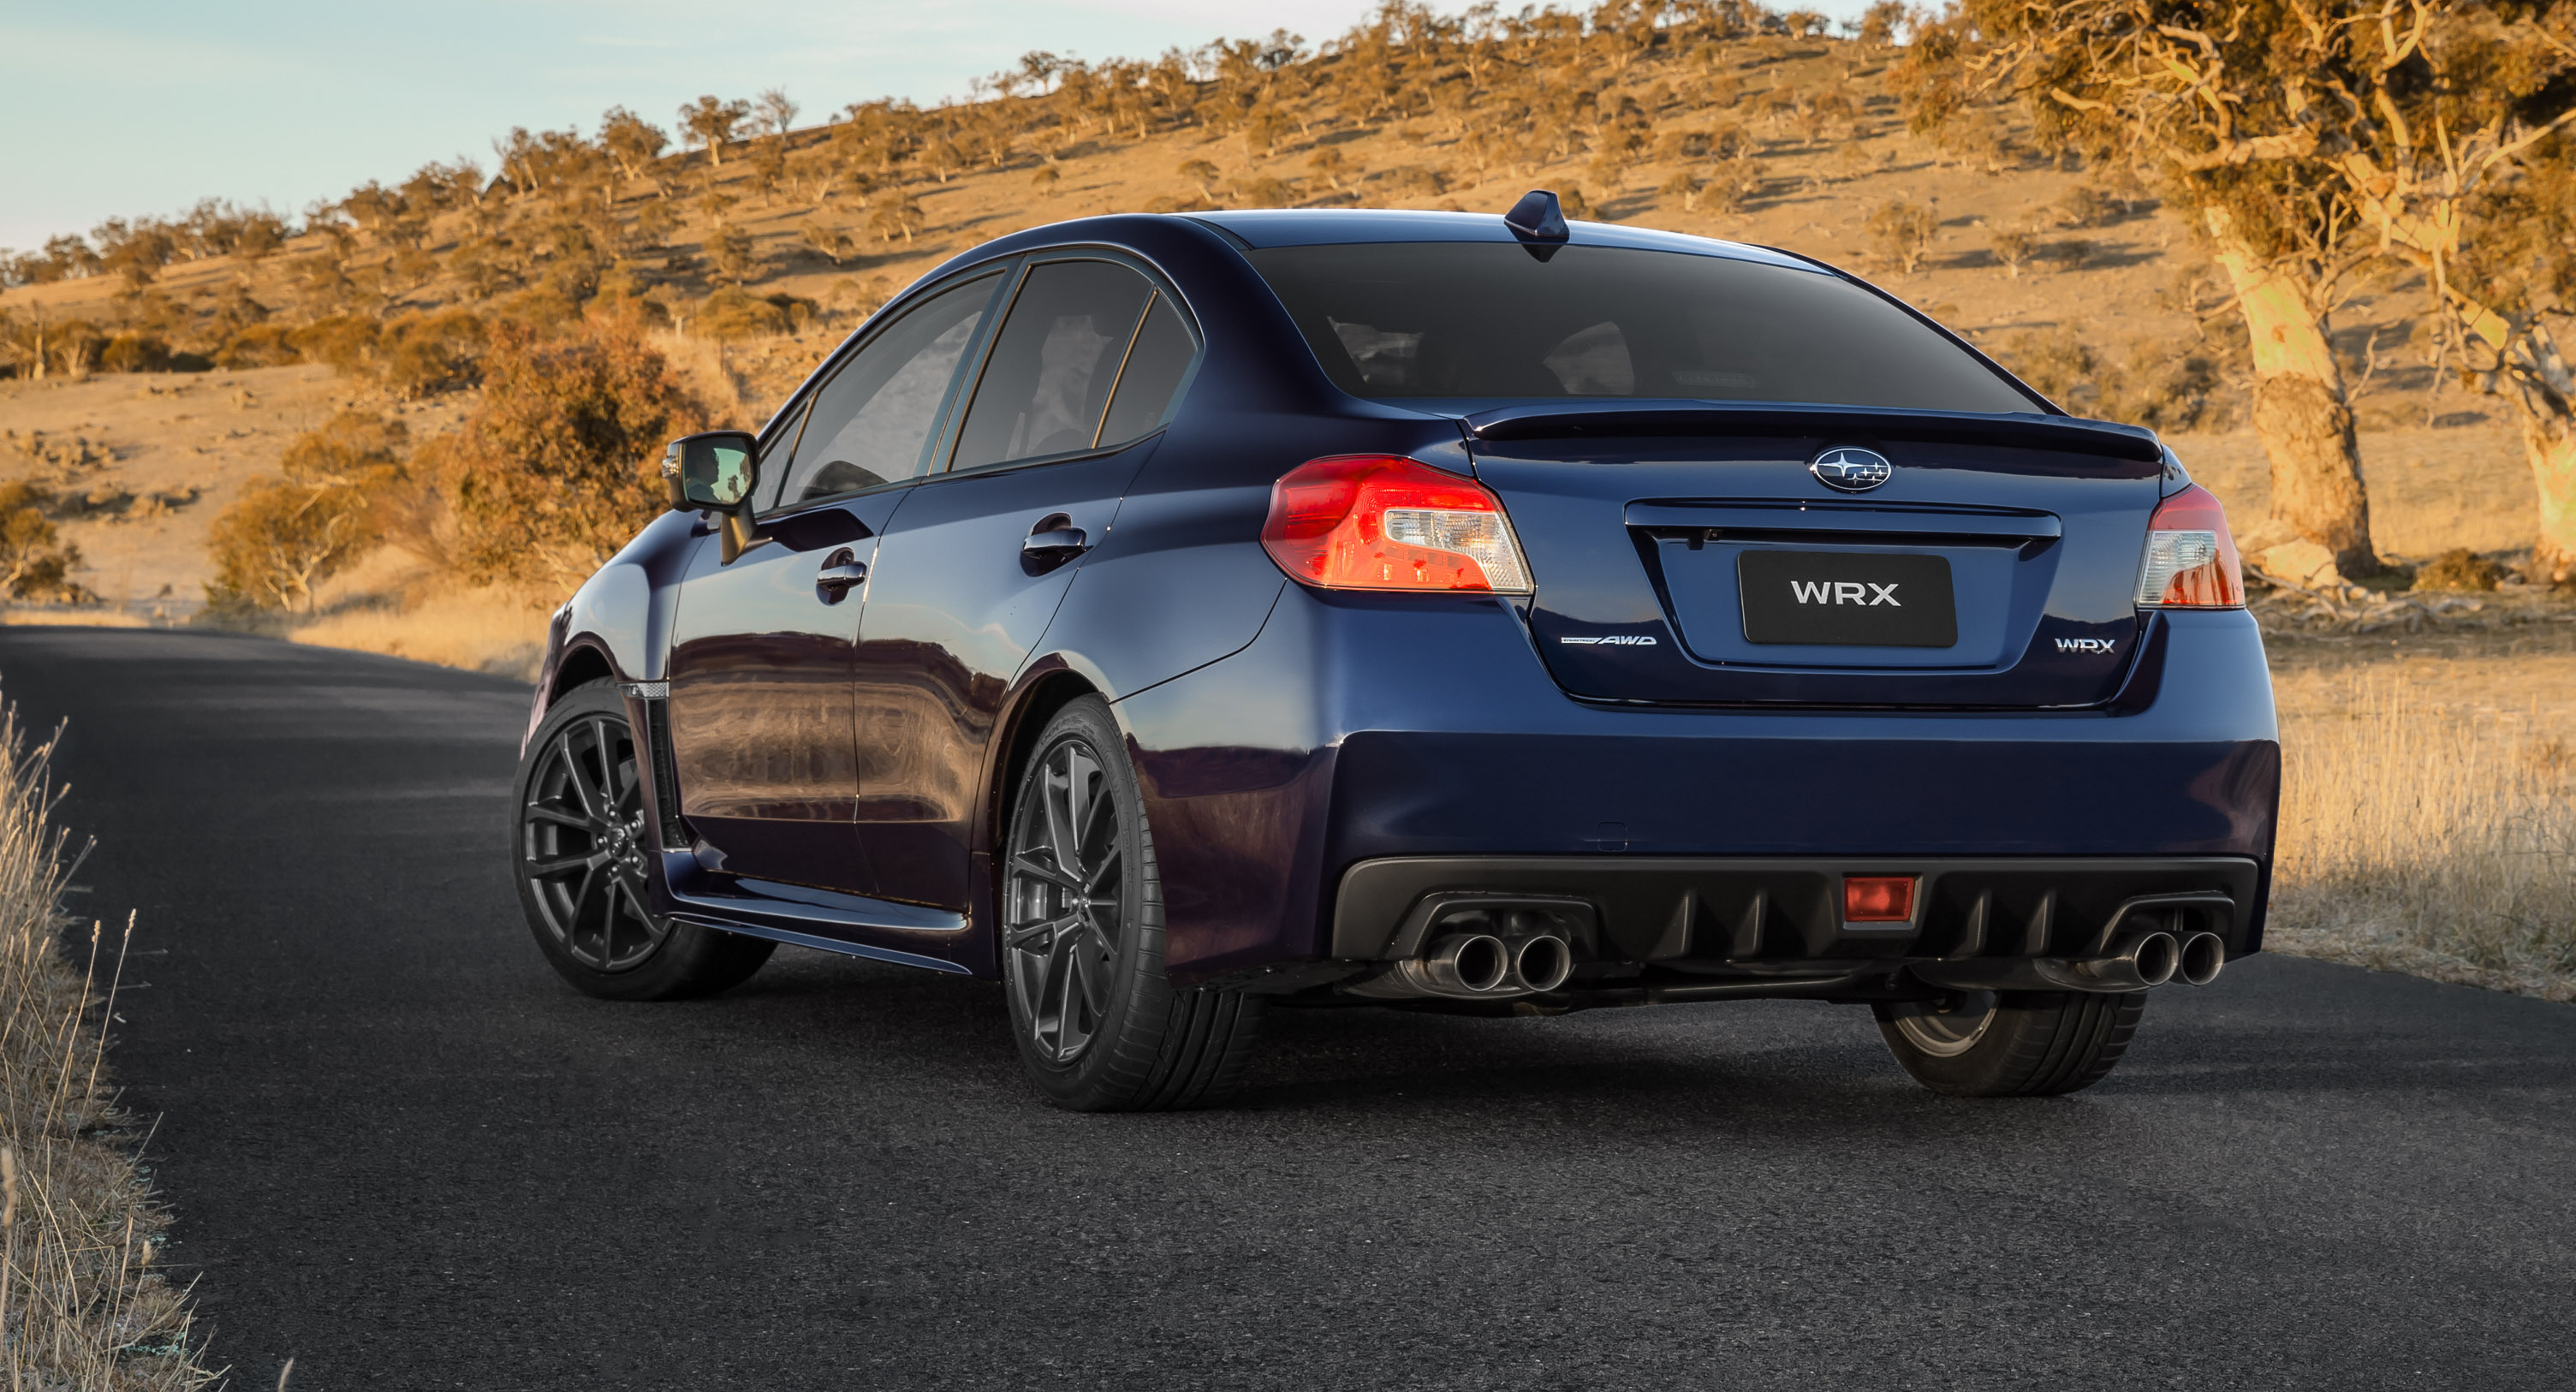 2018 subaru wrx wrx sti pricing and specs tweaked looks more kit photos caradvice. Black Bedroom Furniture Sets. Home Design Ideas